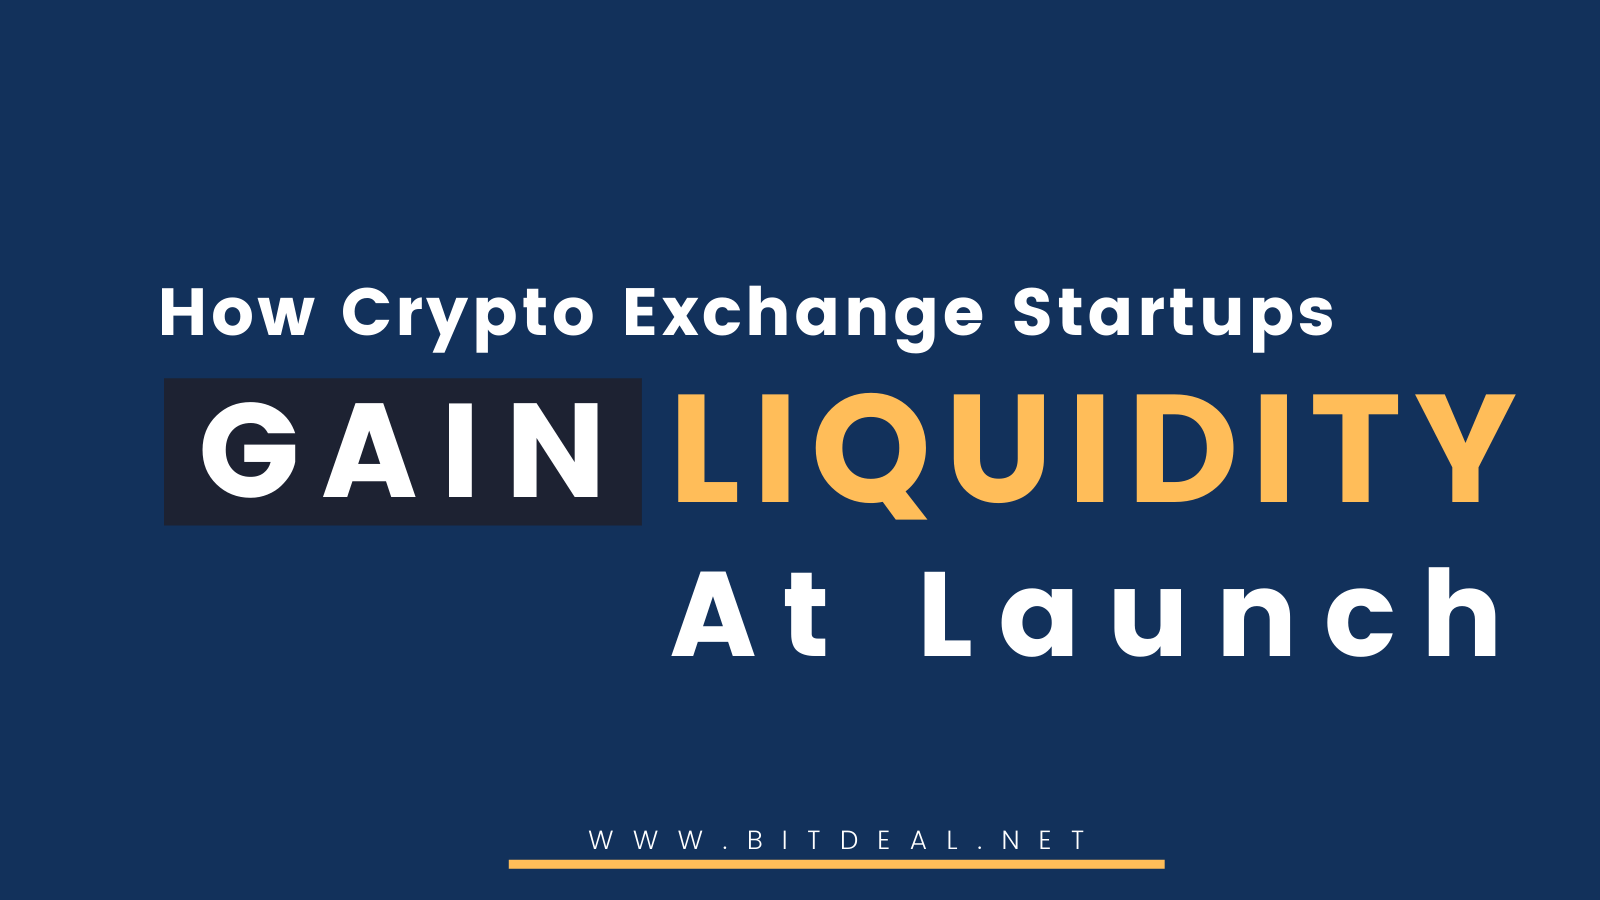 What Is Liquidity API and How Does It Benefit Crypto Exchange Startups?